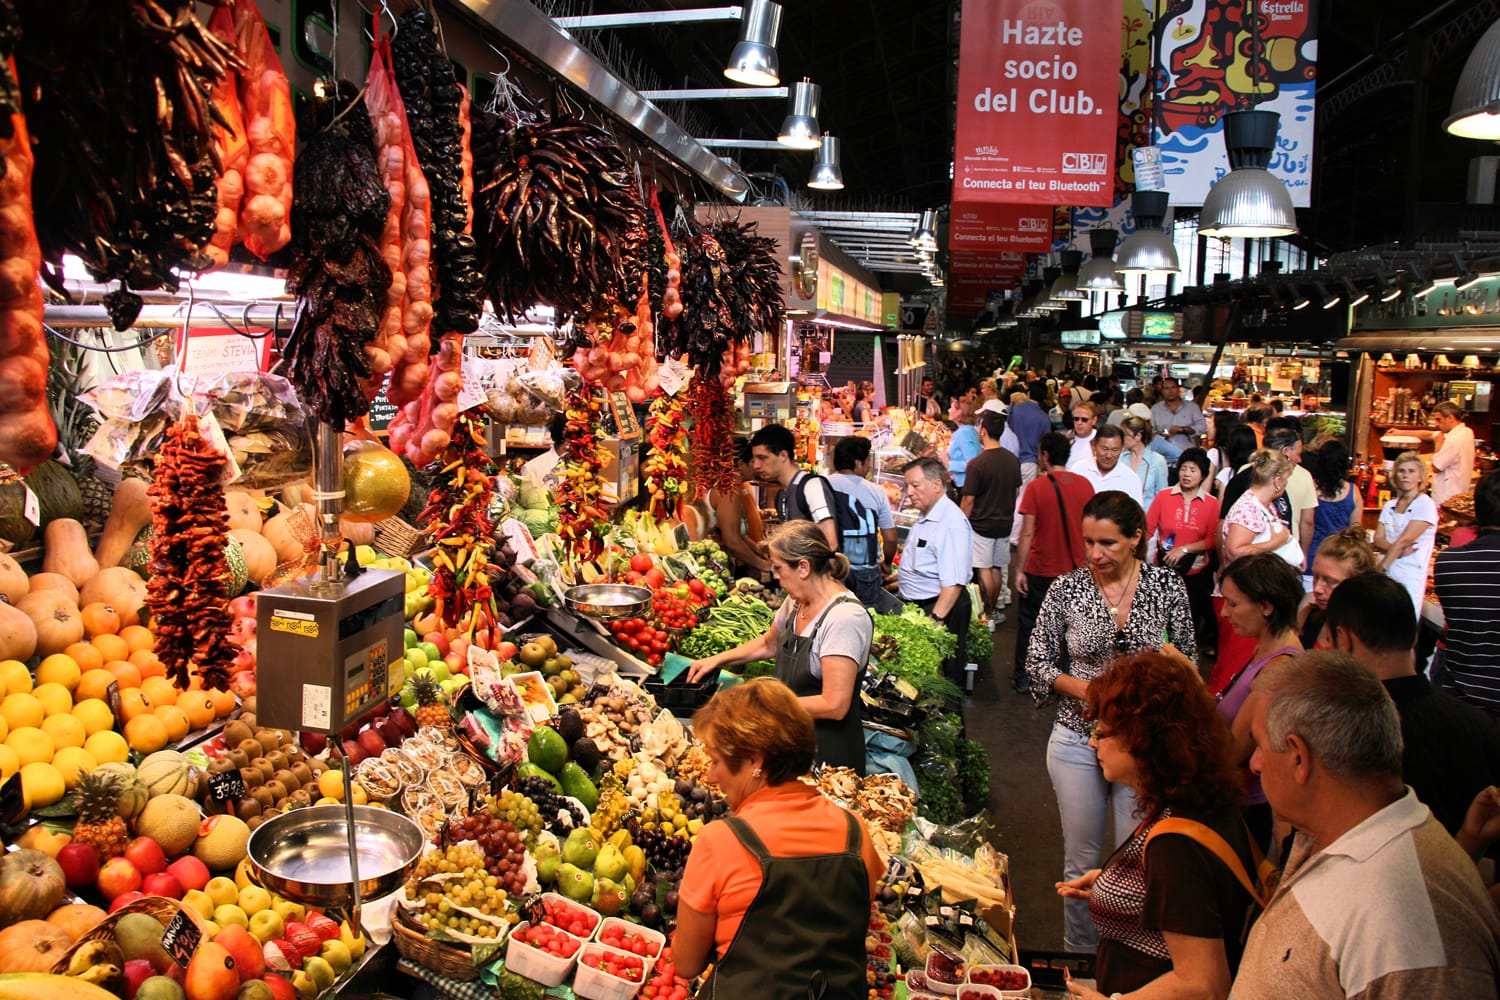 Tourists in famous La Boqueria market in Barcelona. One of the oldest markets in Europe that still exist. Established 1217.